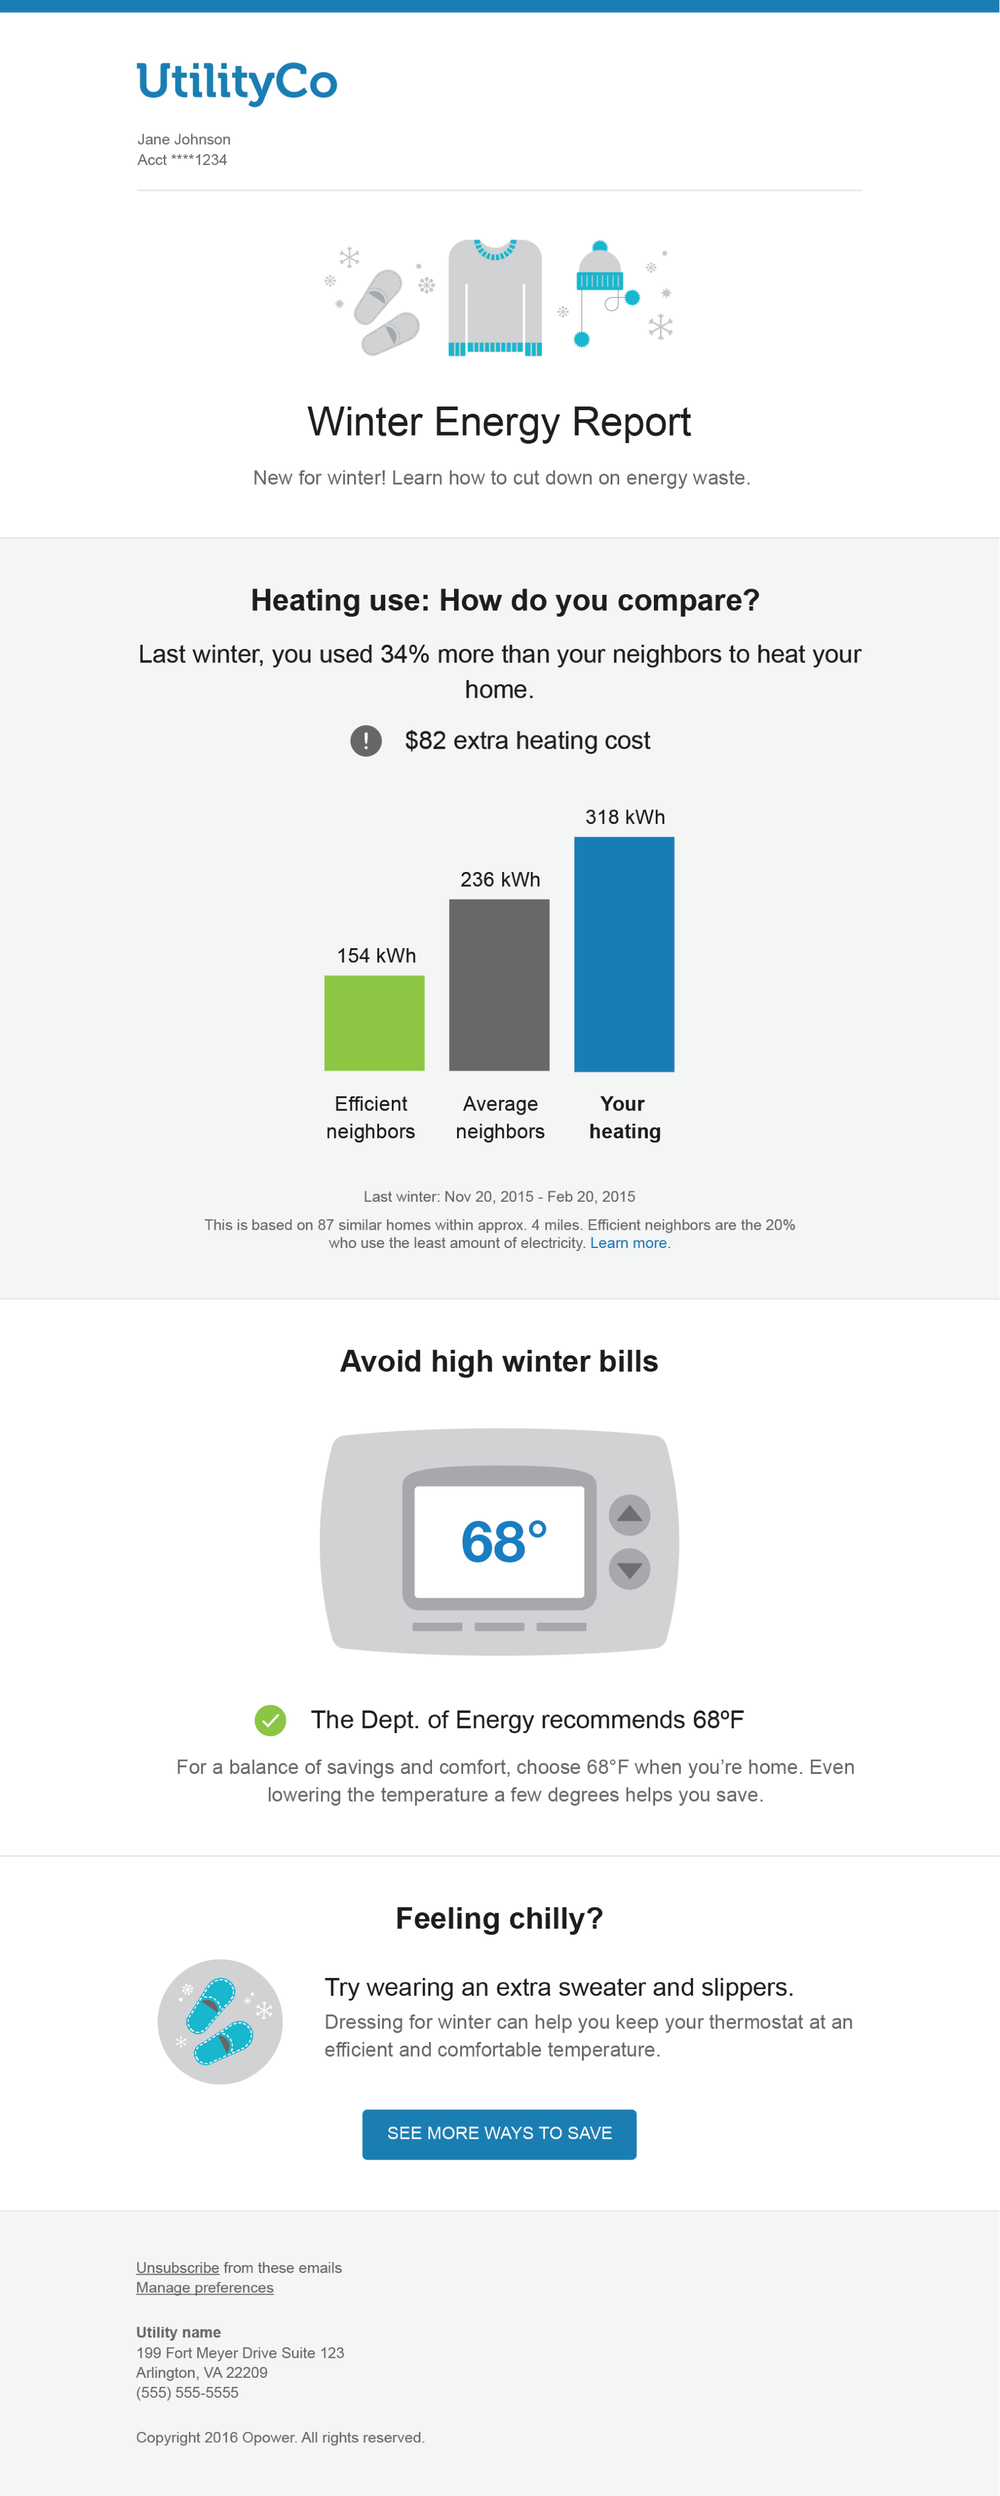 150422-eHER2-Sales-Mocks_ELEC_Winter_CoolingNC_1setting-small.png